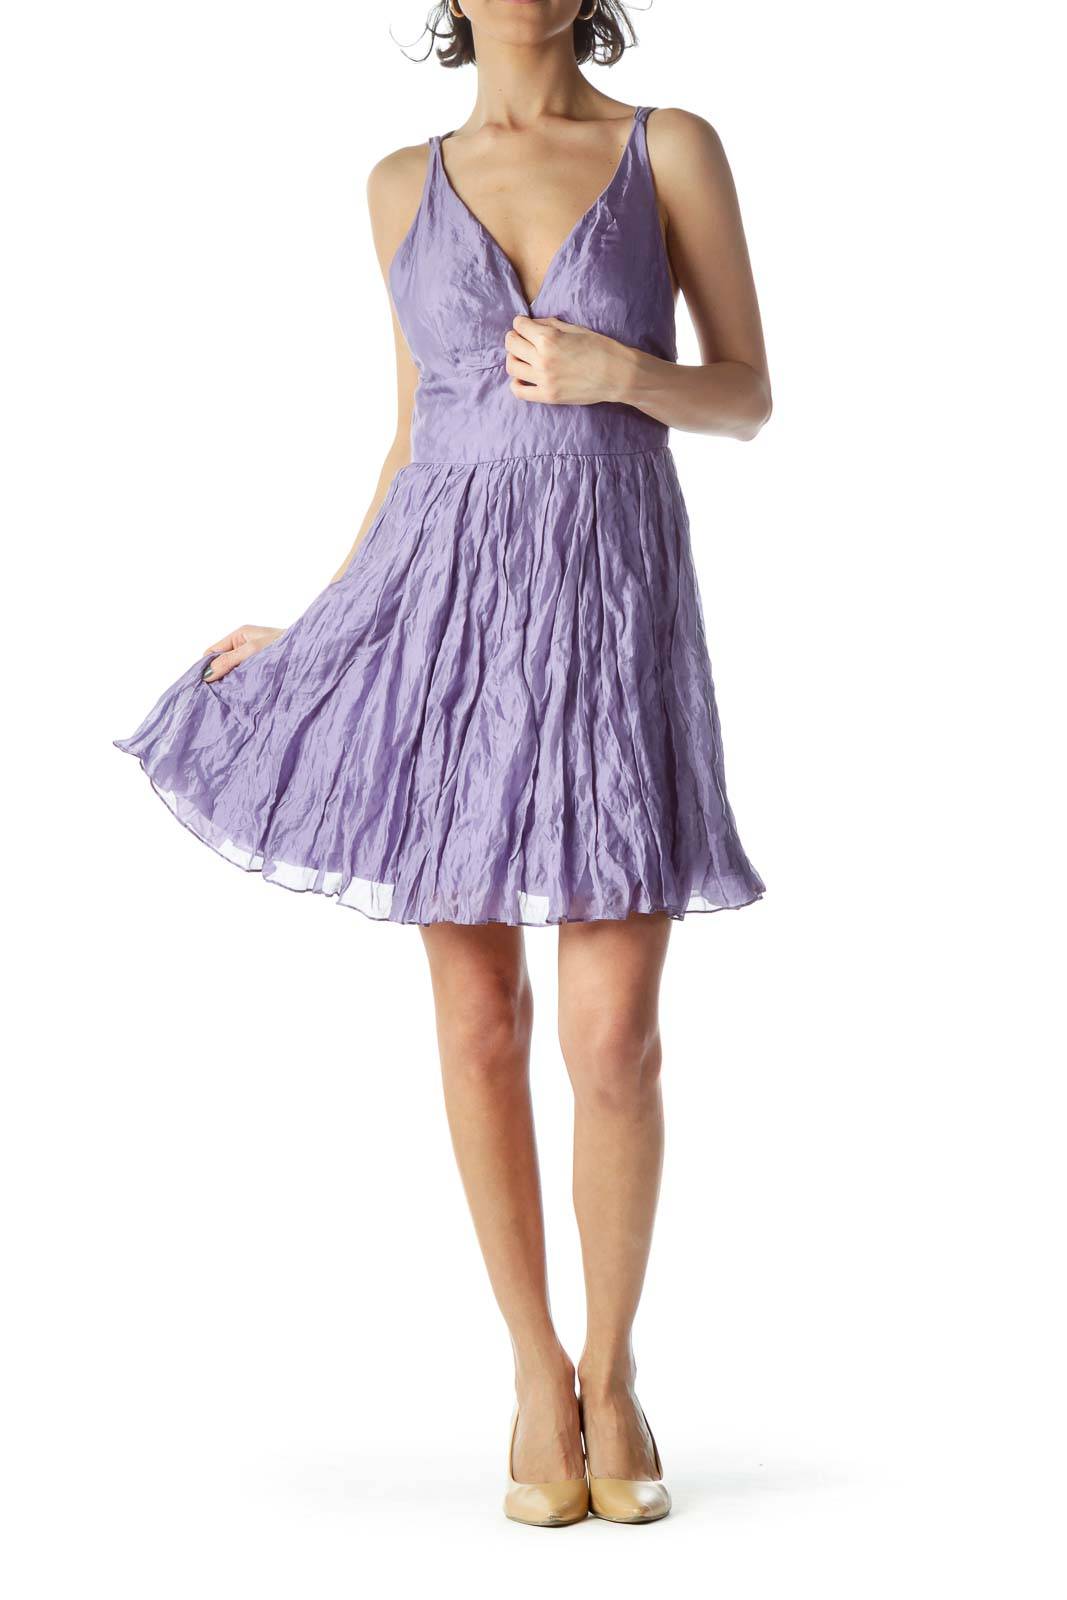 Lilac Spaghetti Strap Puffy Flared Dress